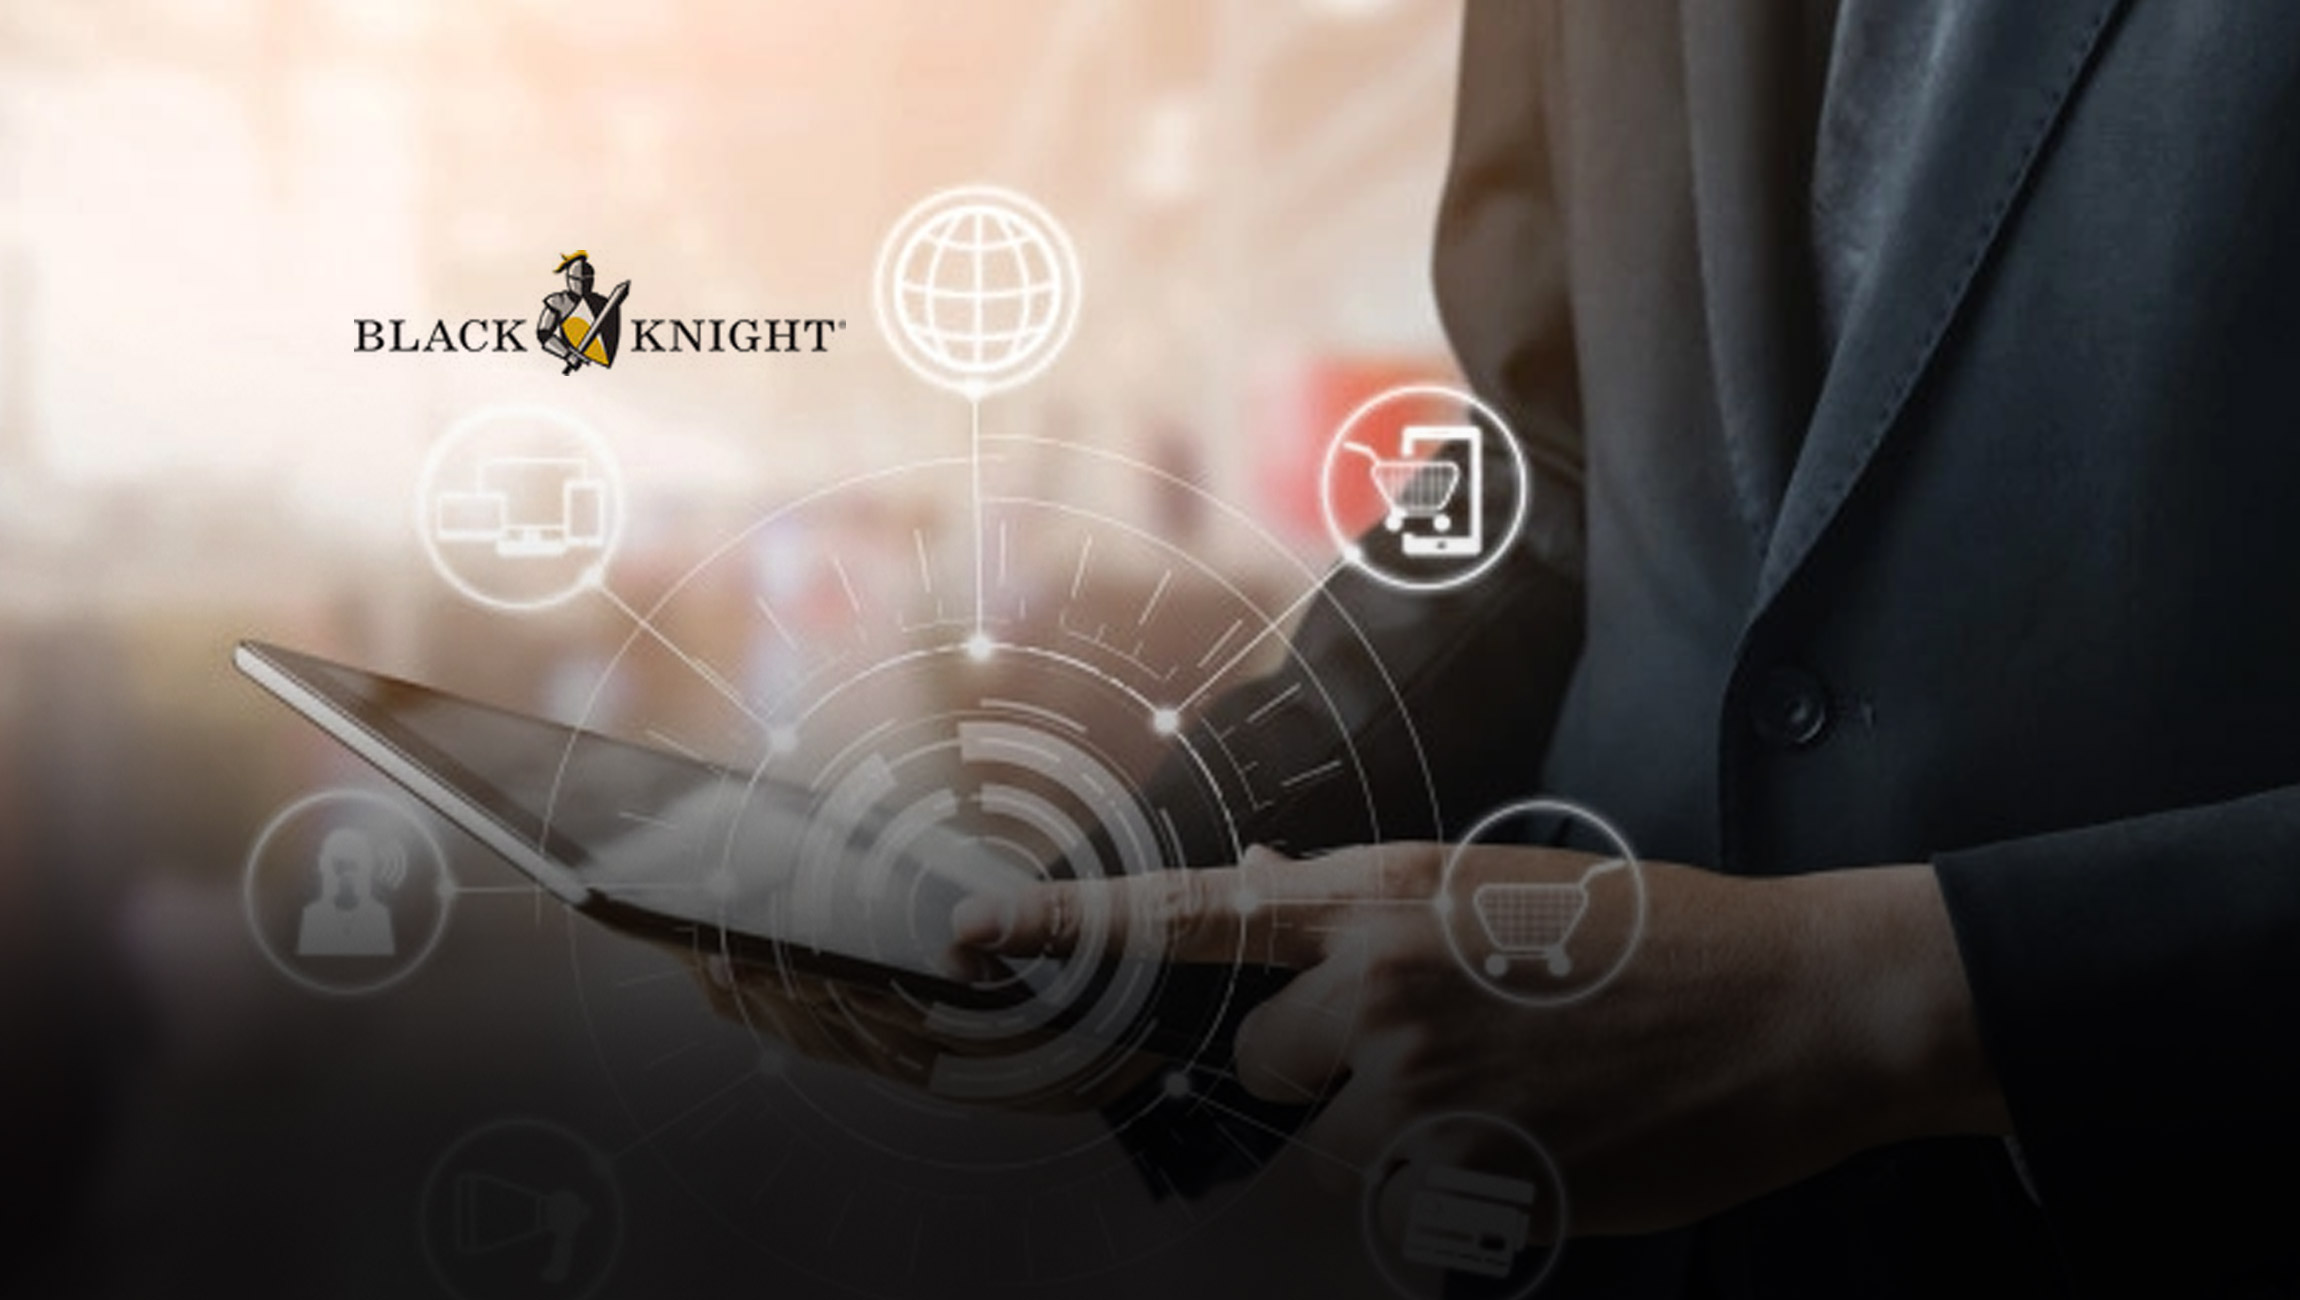 Black-Knight-Launches-Webhooks-Automation-Component-for-Its-Optimal-Blue-API-Platform_-Adds-Event-Based-Push-Delivery-of-Real-Time-Transactional-Data